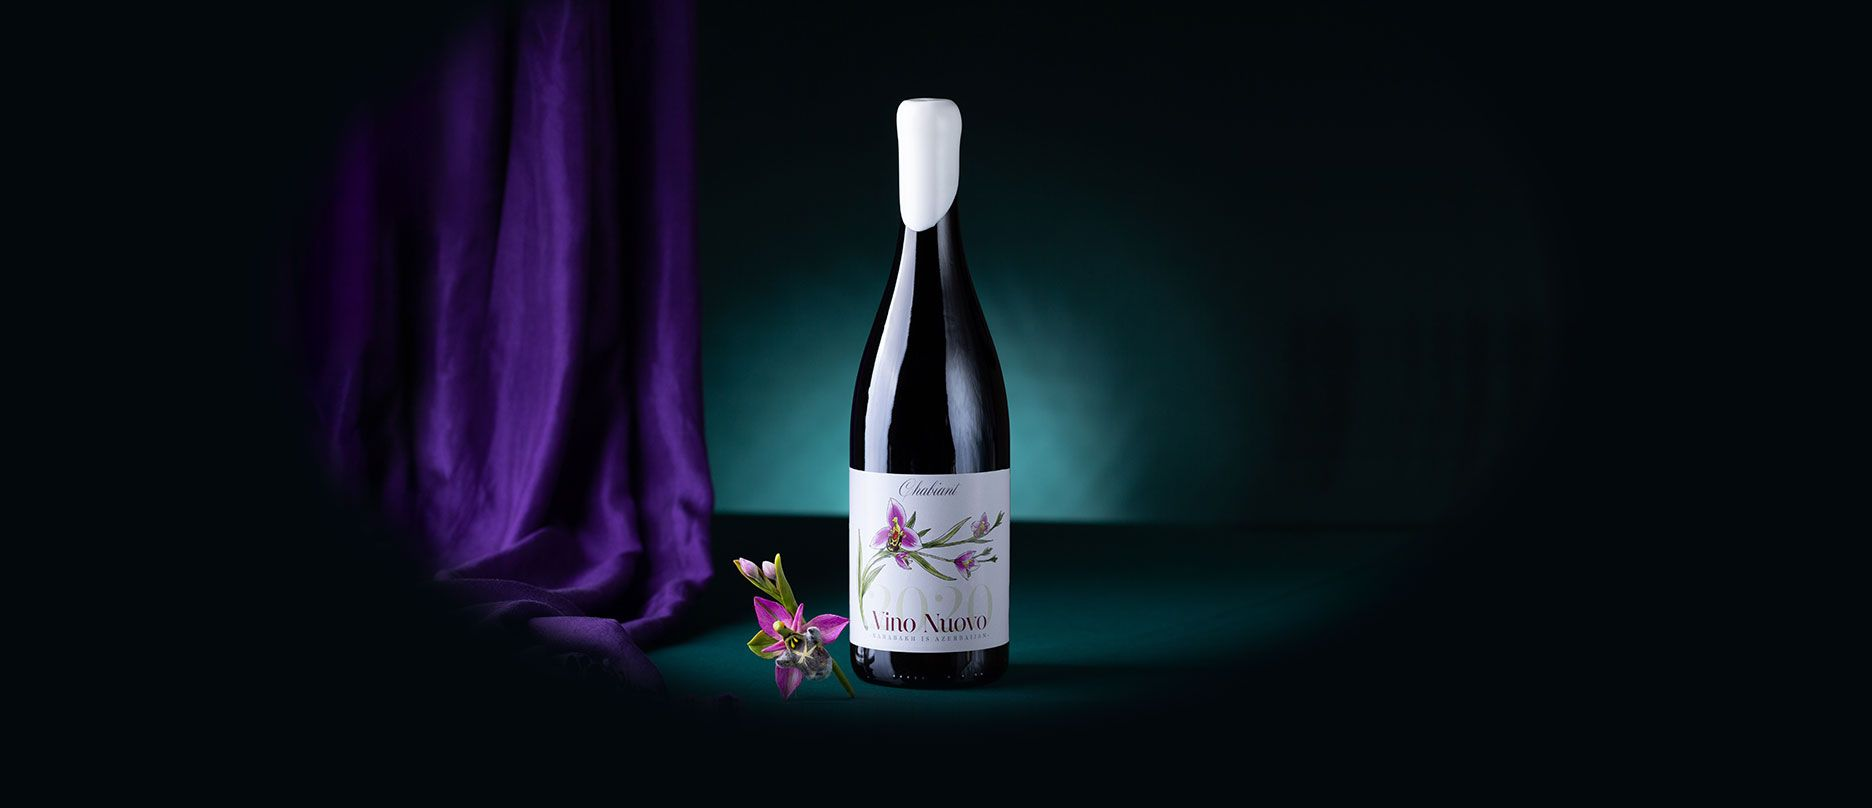 Limited edition of Vino Nuovo 2020